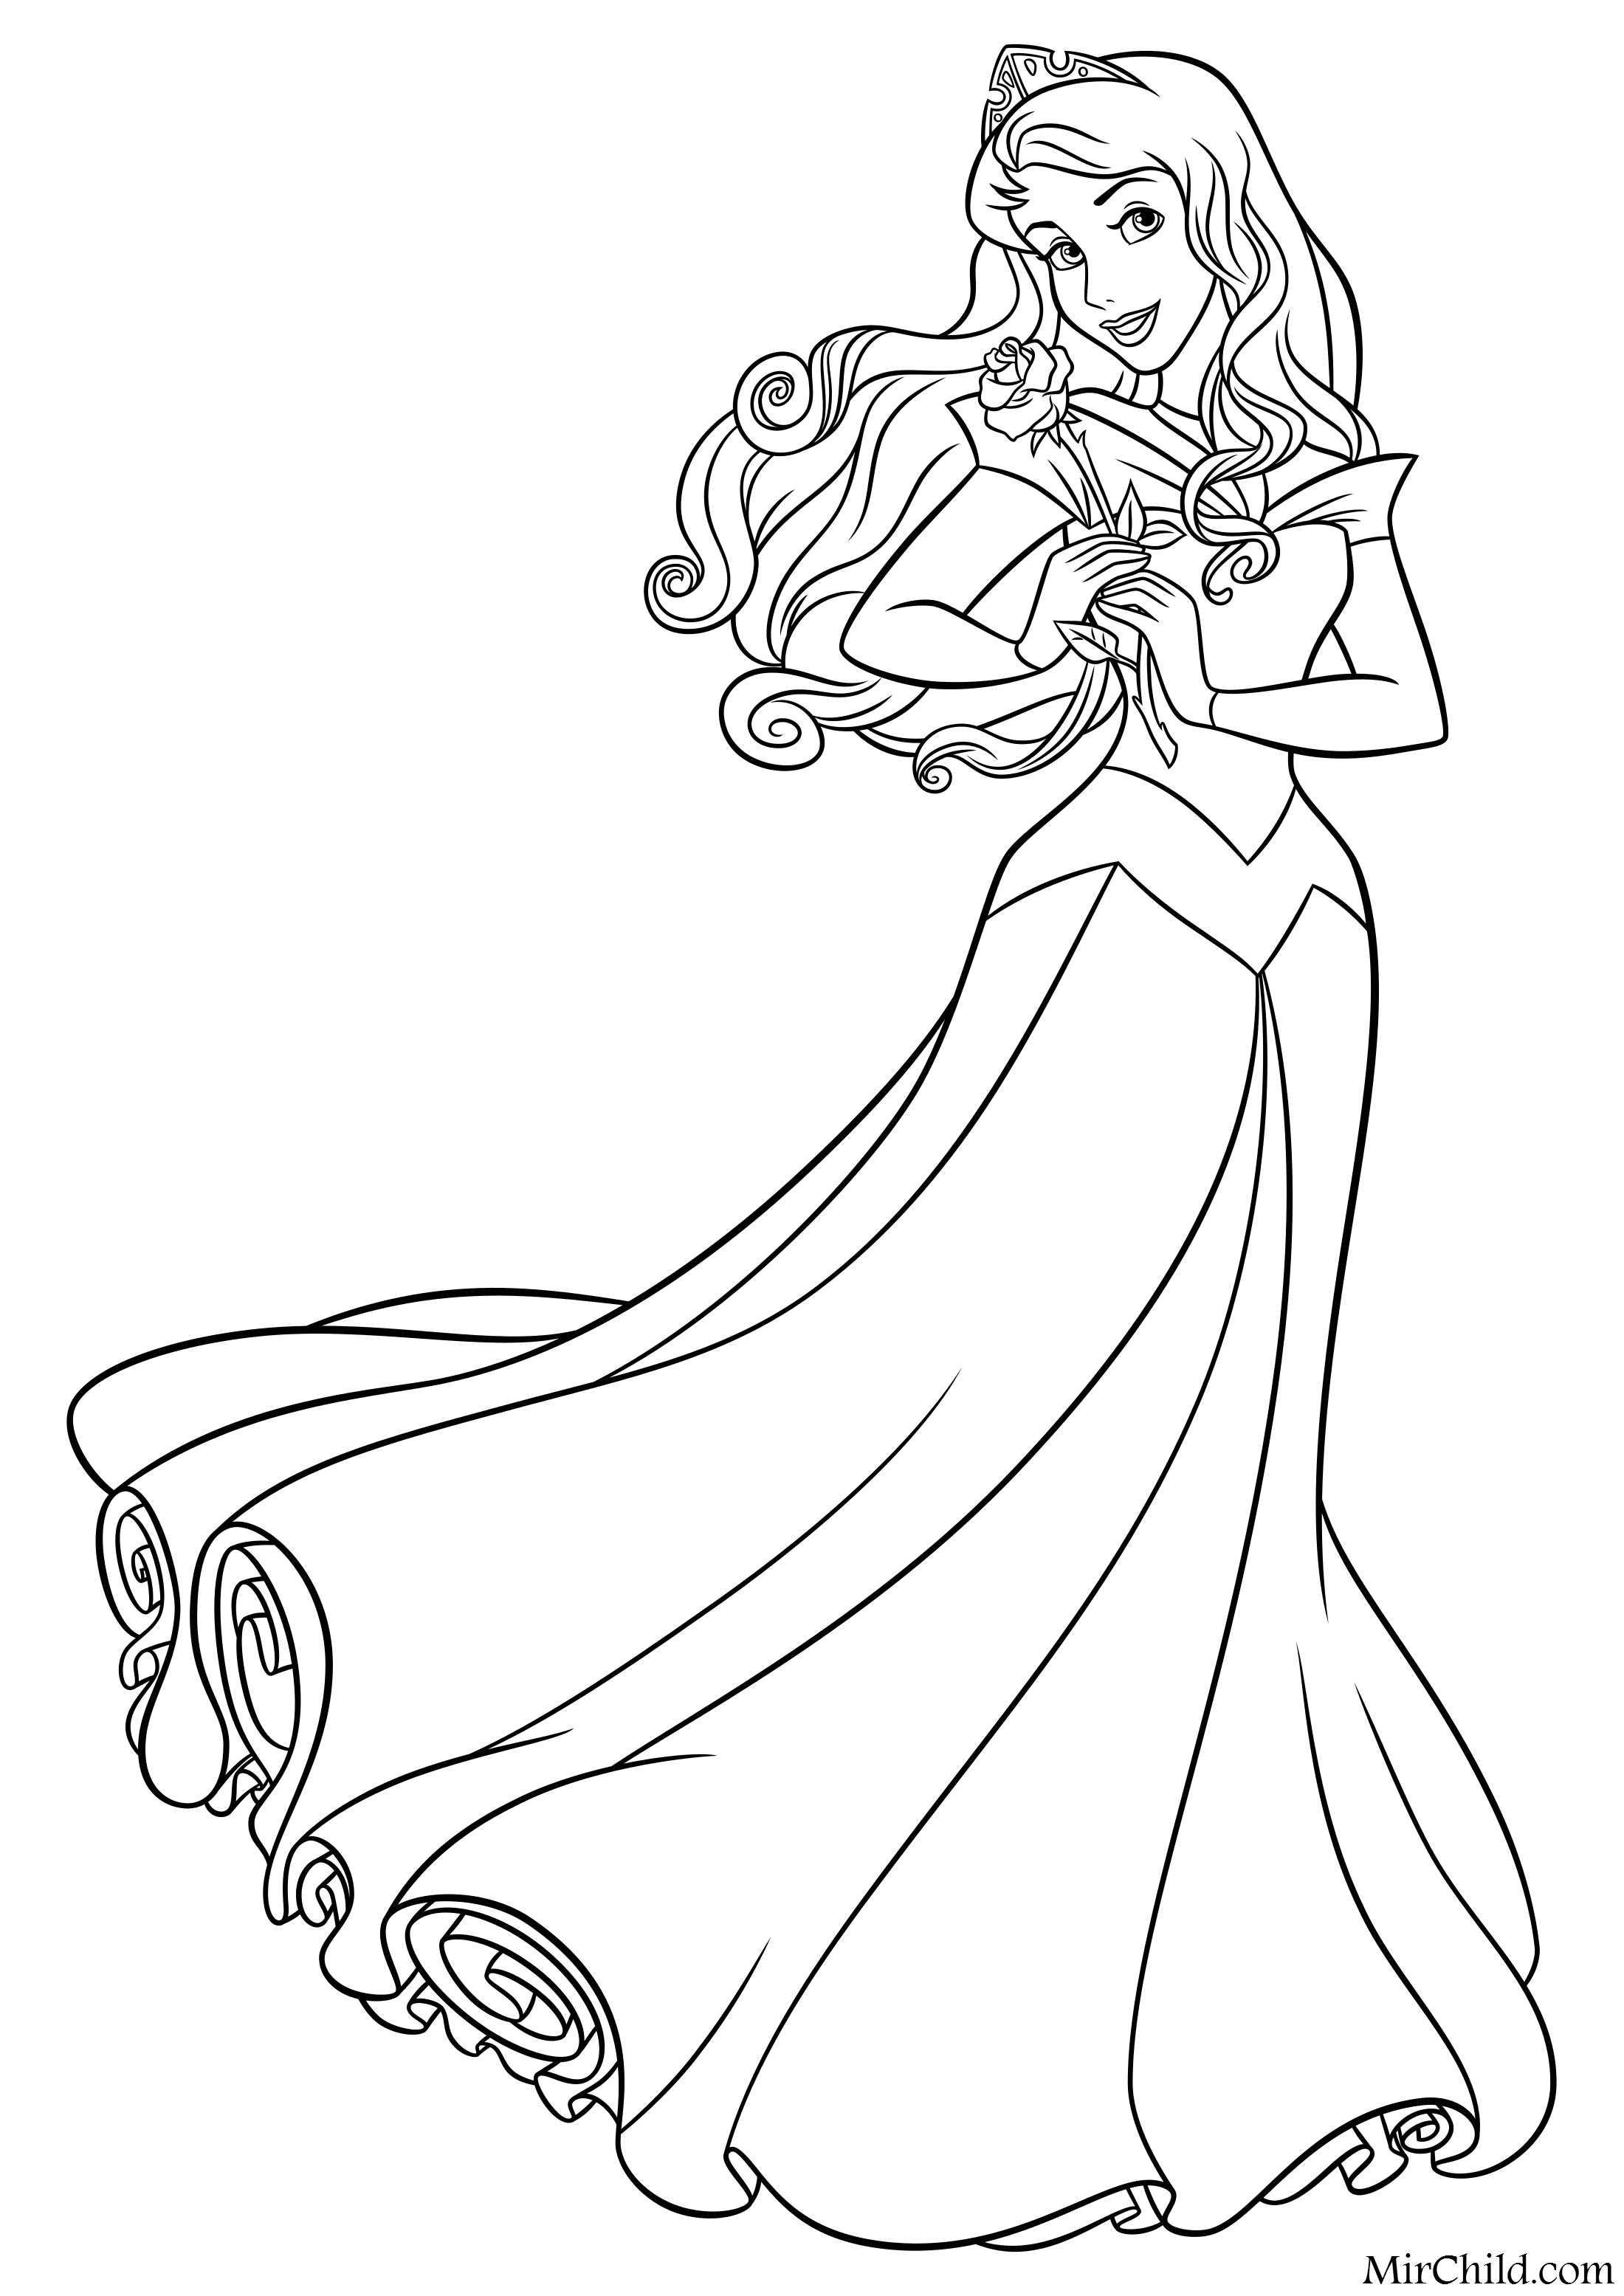 Haiti coloring pages coloring pages for Haiti flag coloring page